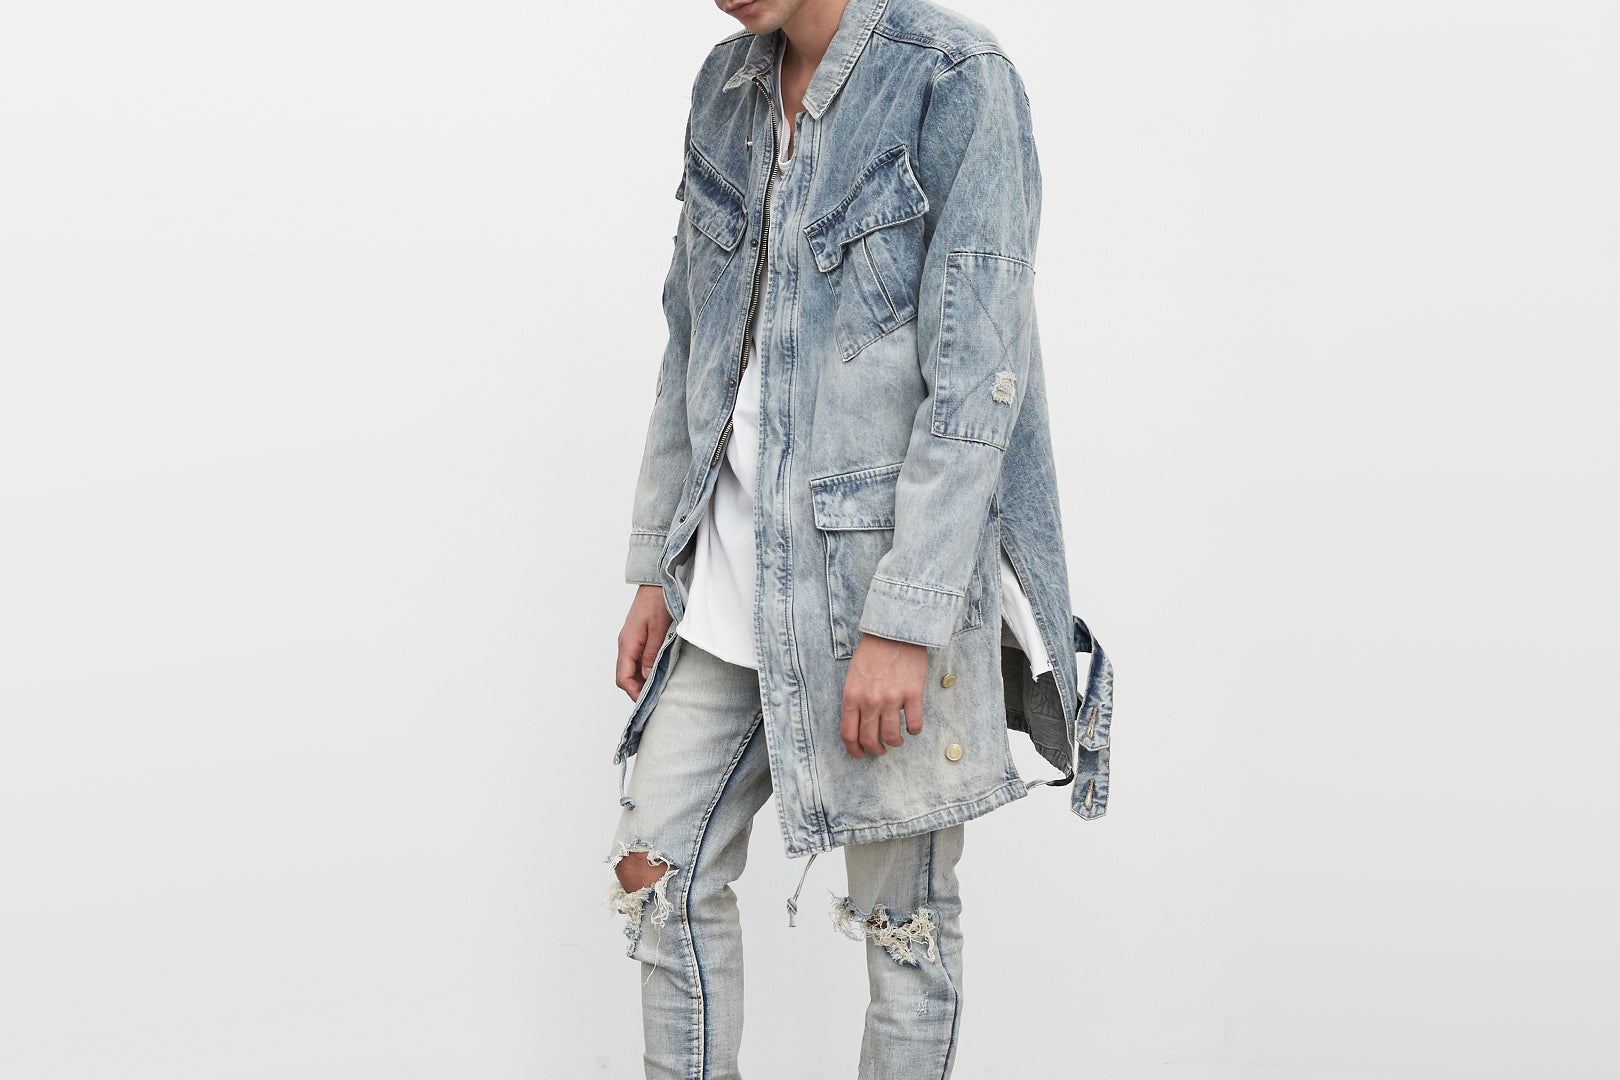 denim long strap jacket by profound aesthetic